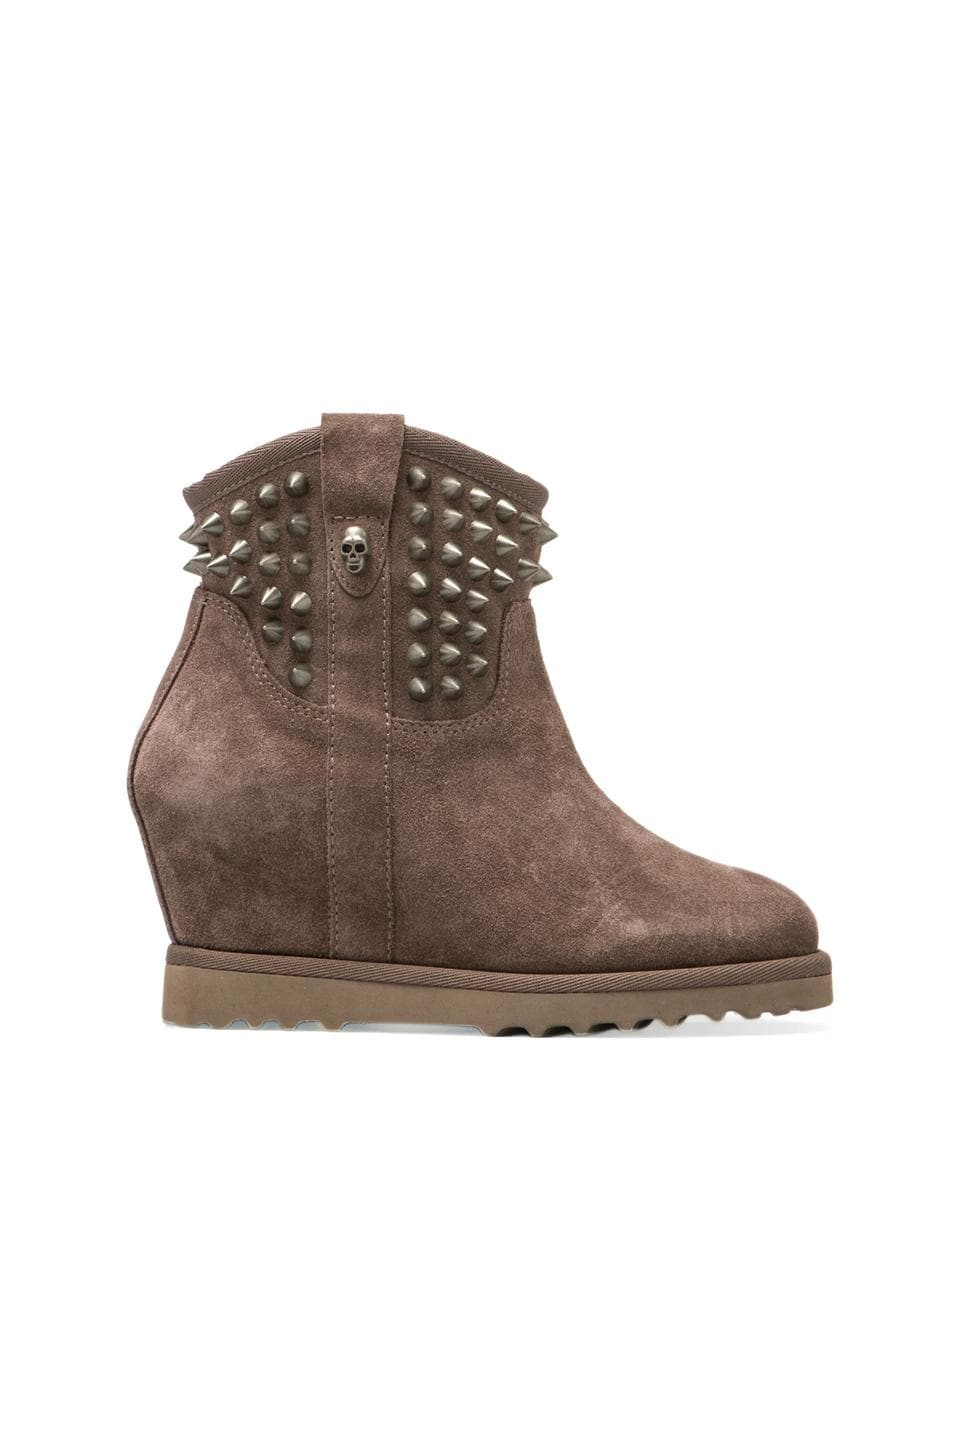 Ash Yahoo Boot in Taupe